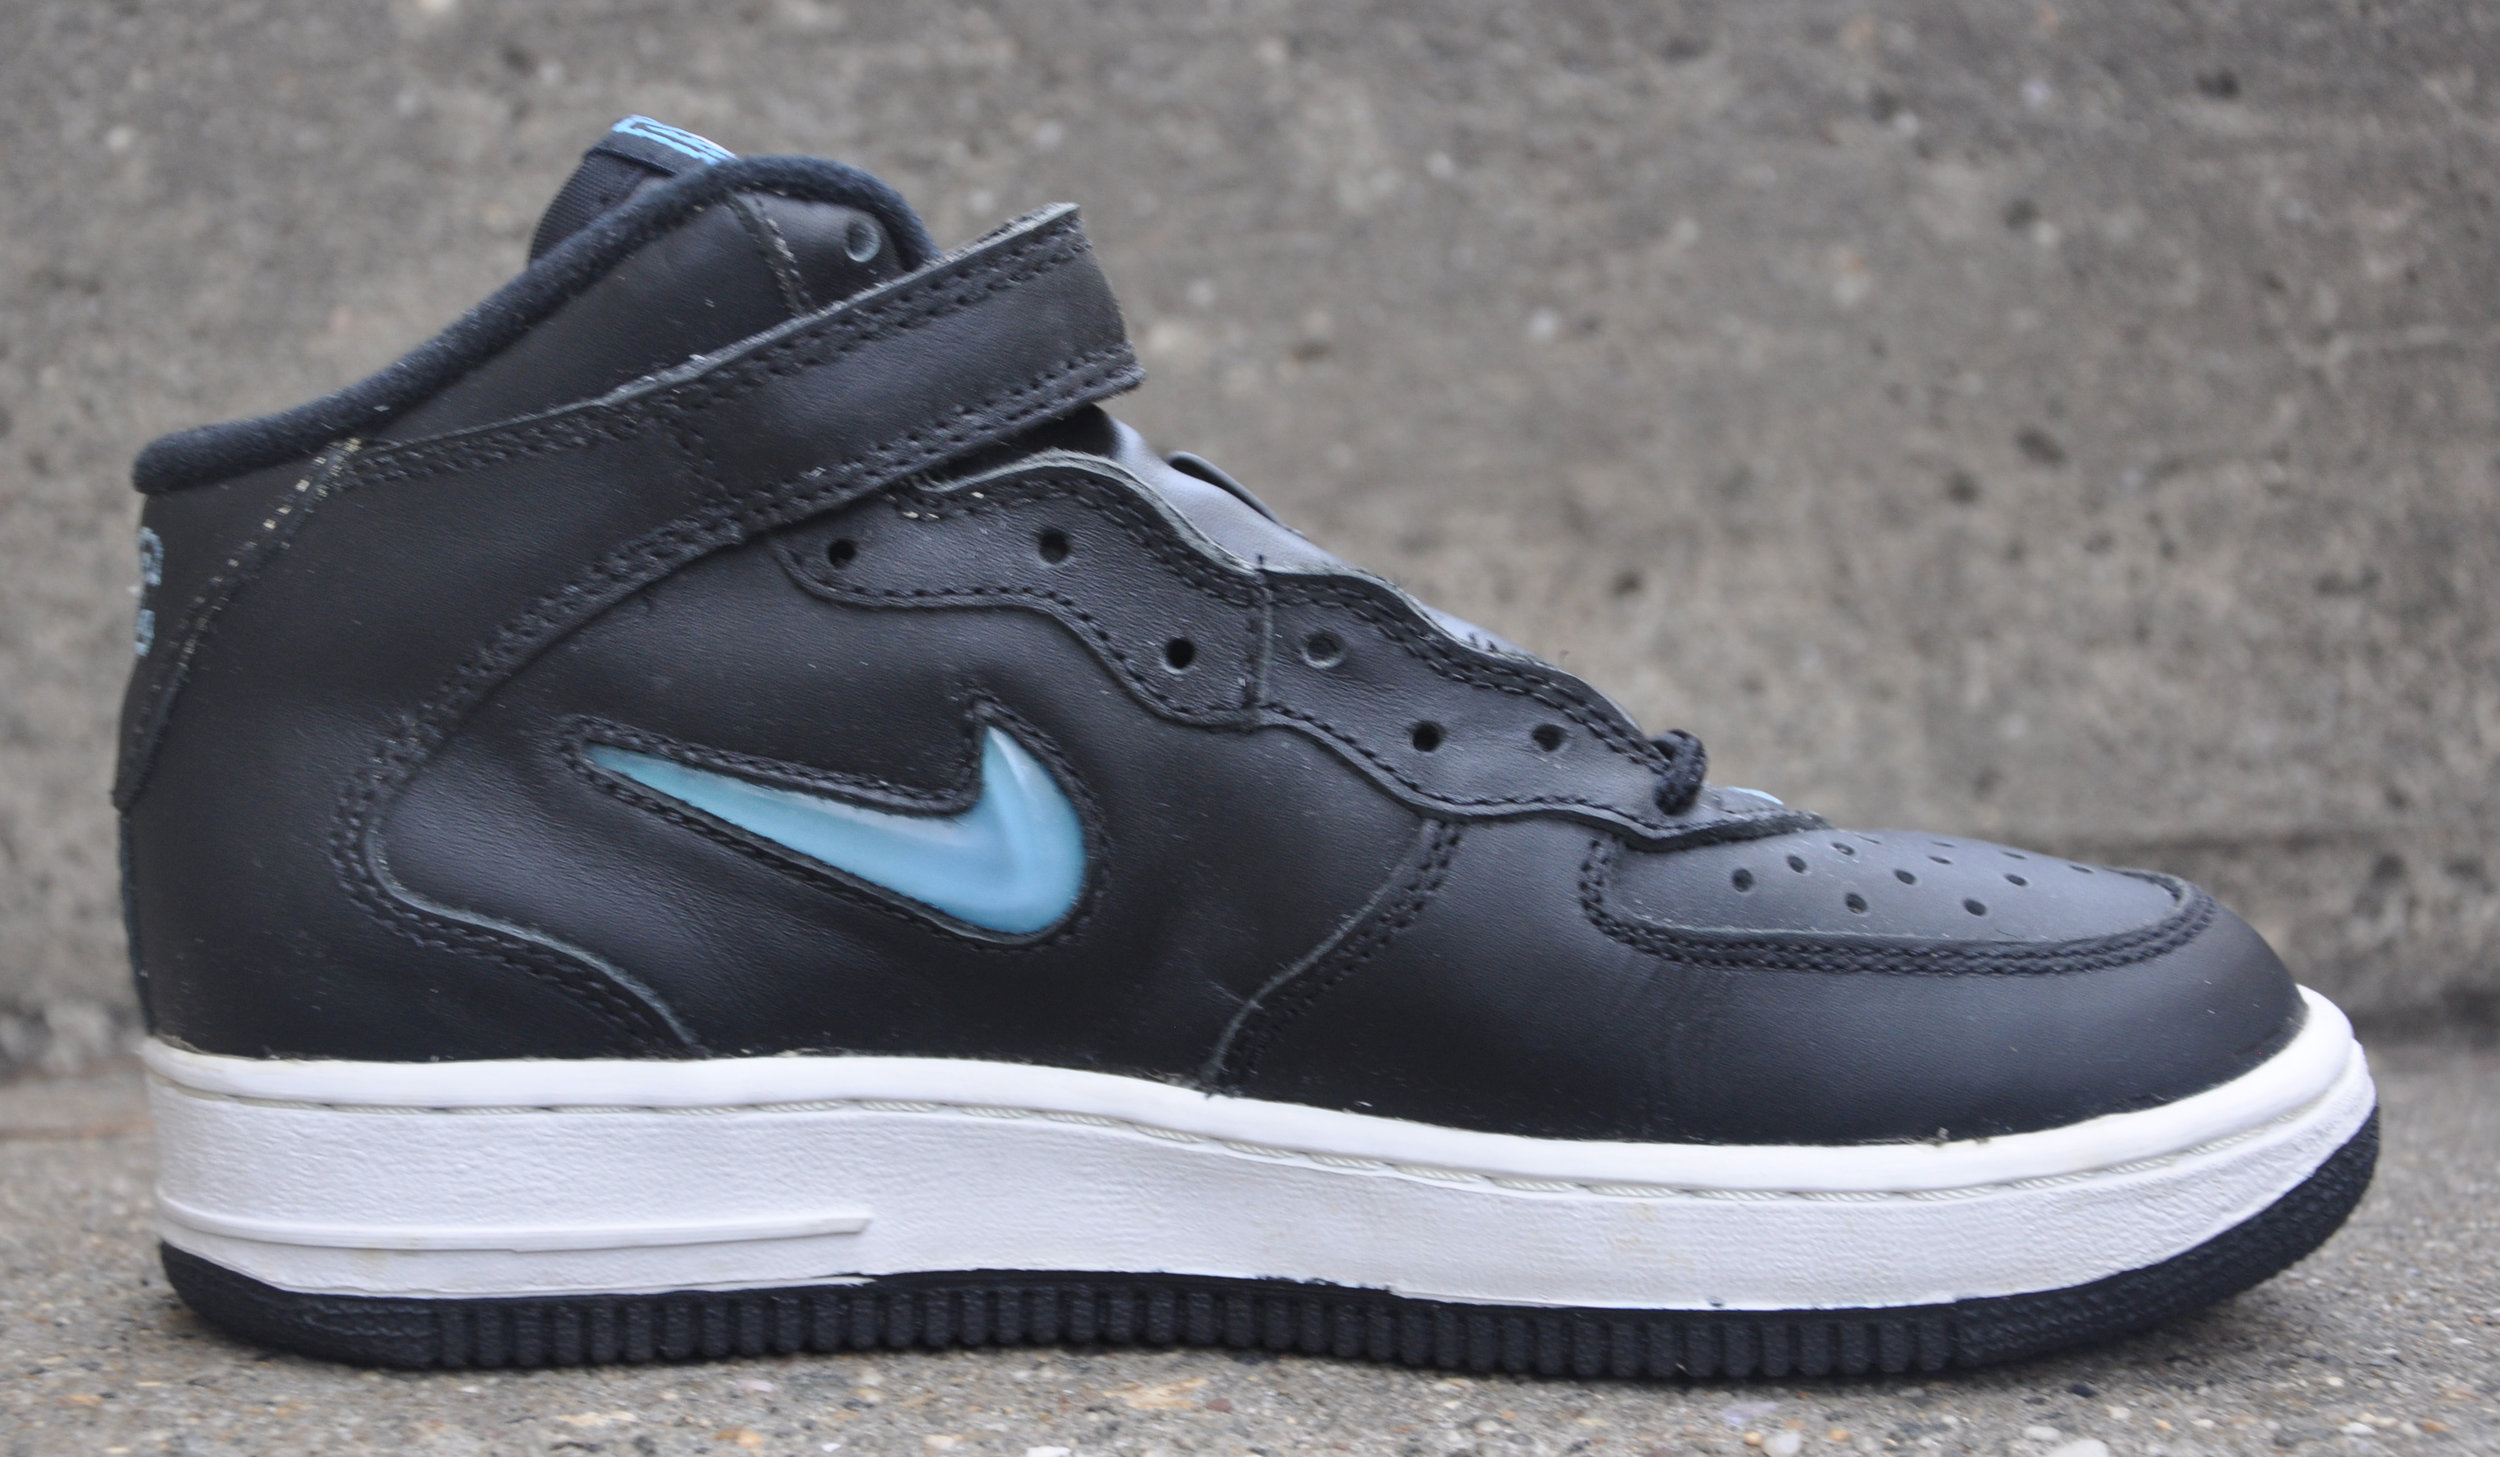 Kids Nike Air Force 1 Mid Nyc Jewel Black Carolina Blue Size 5 5